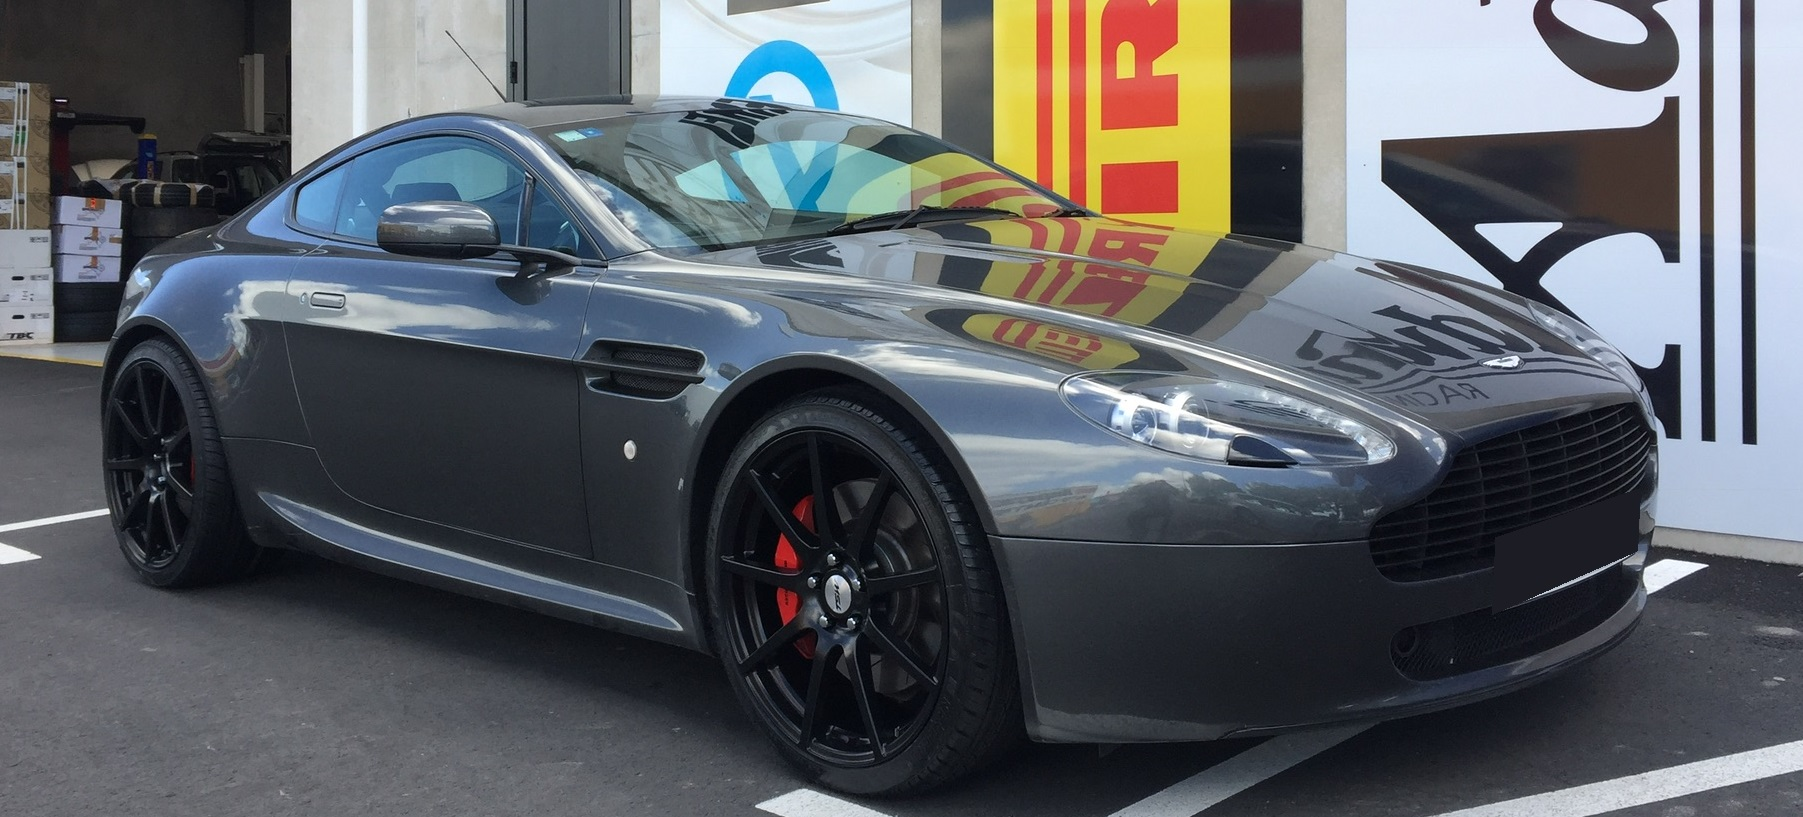 Aston Martin on TSW Interlargos